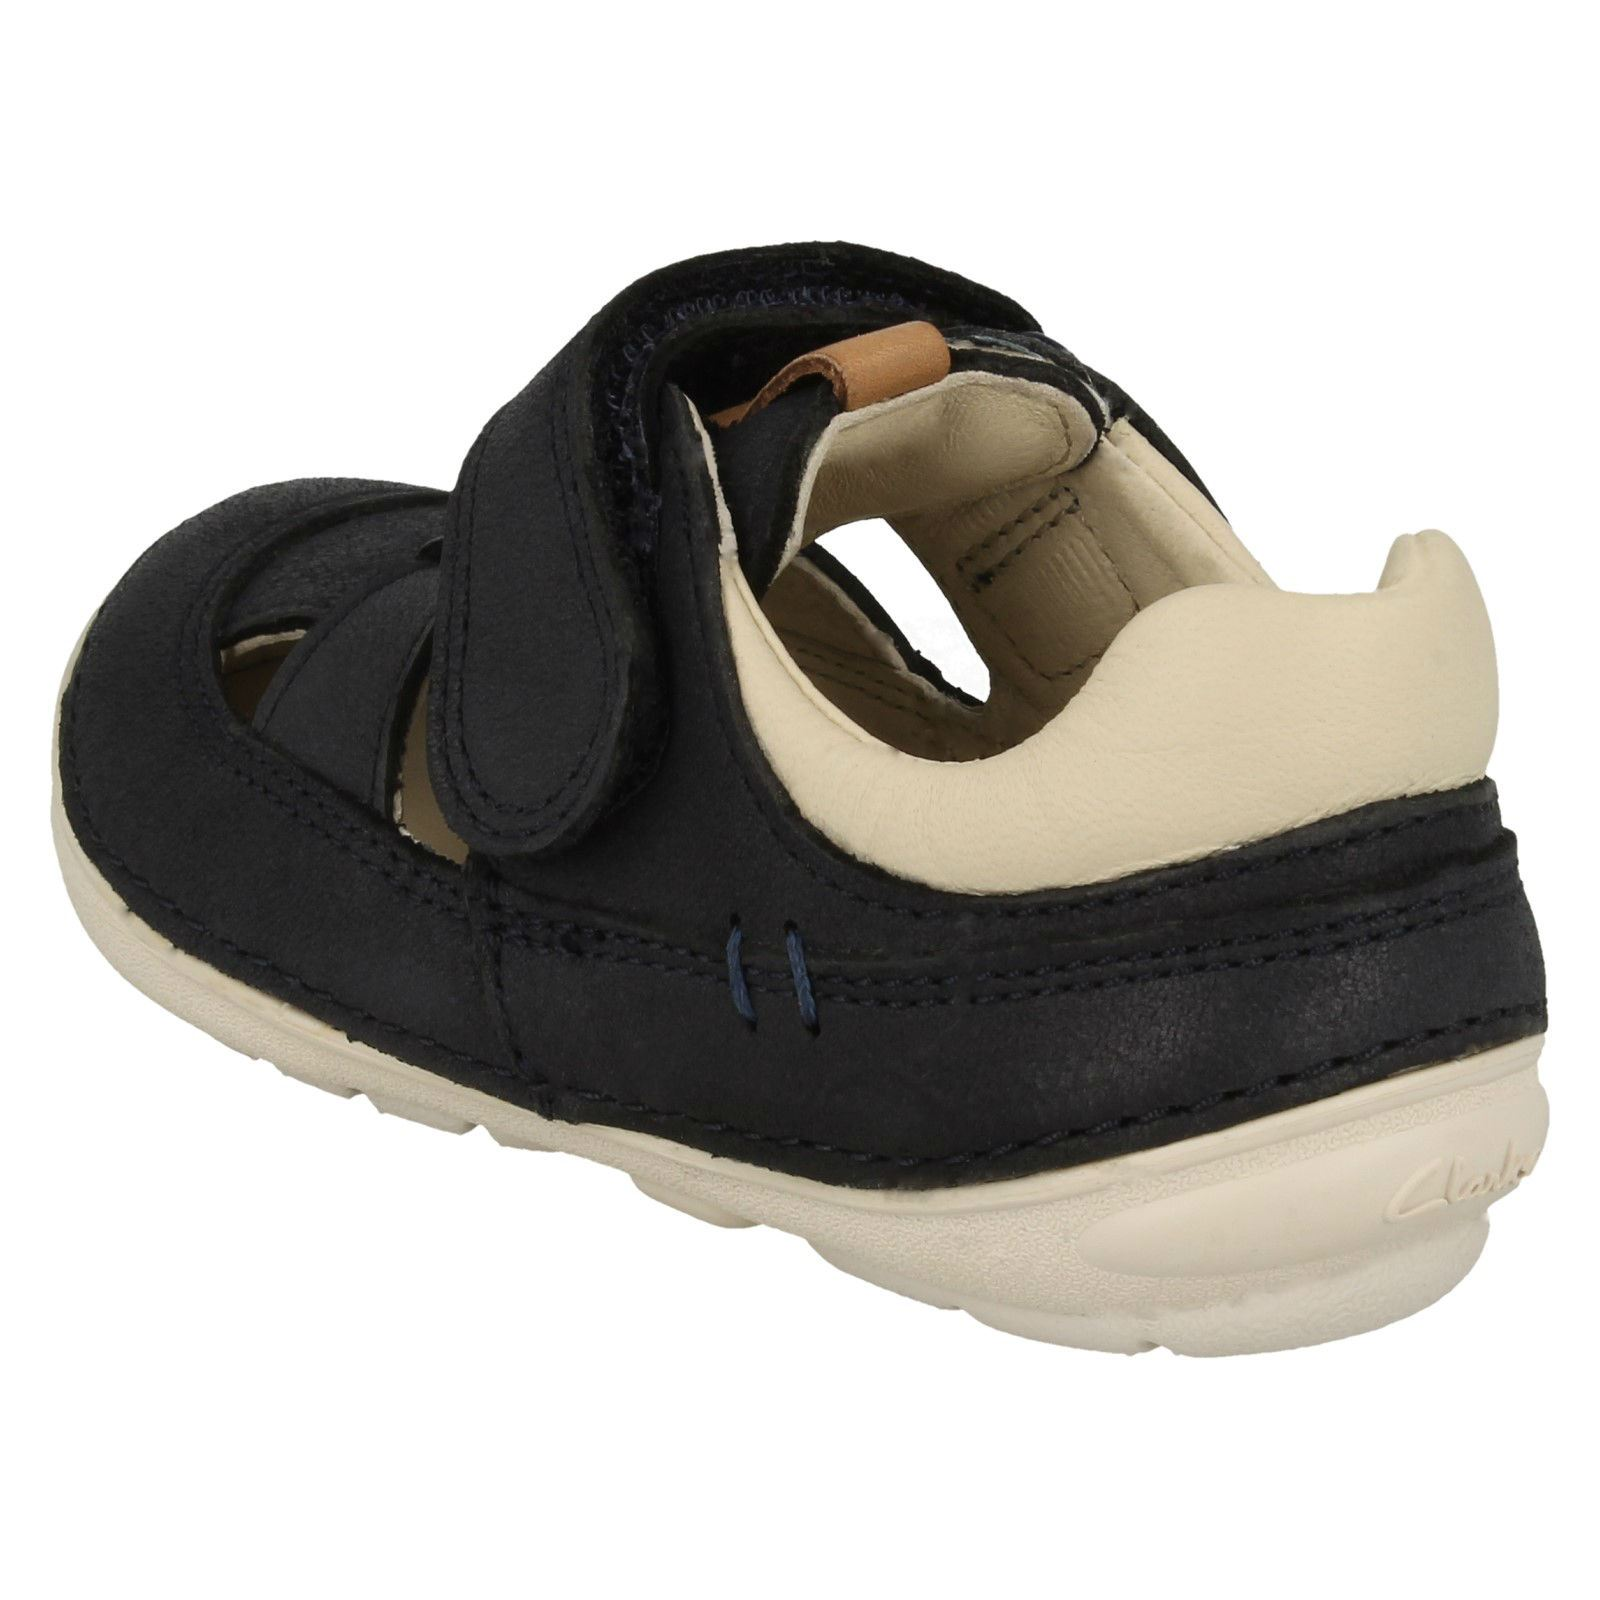 Clarks Boys Casual Trainer Sandals Softly Ash